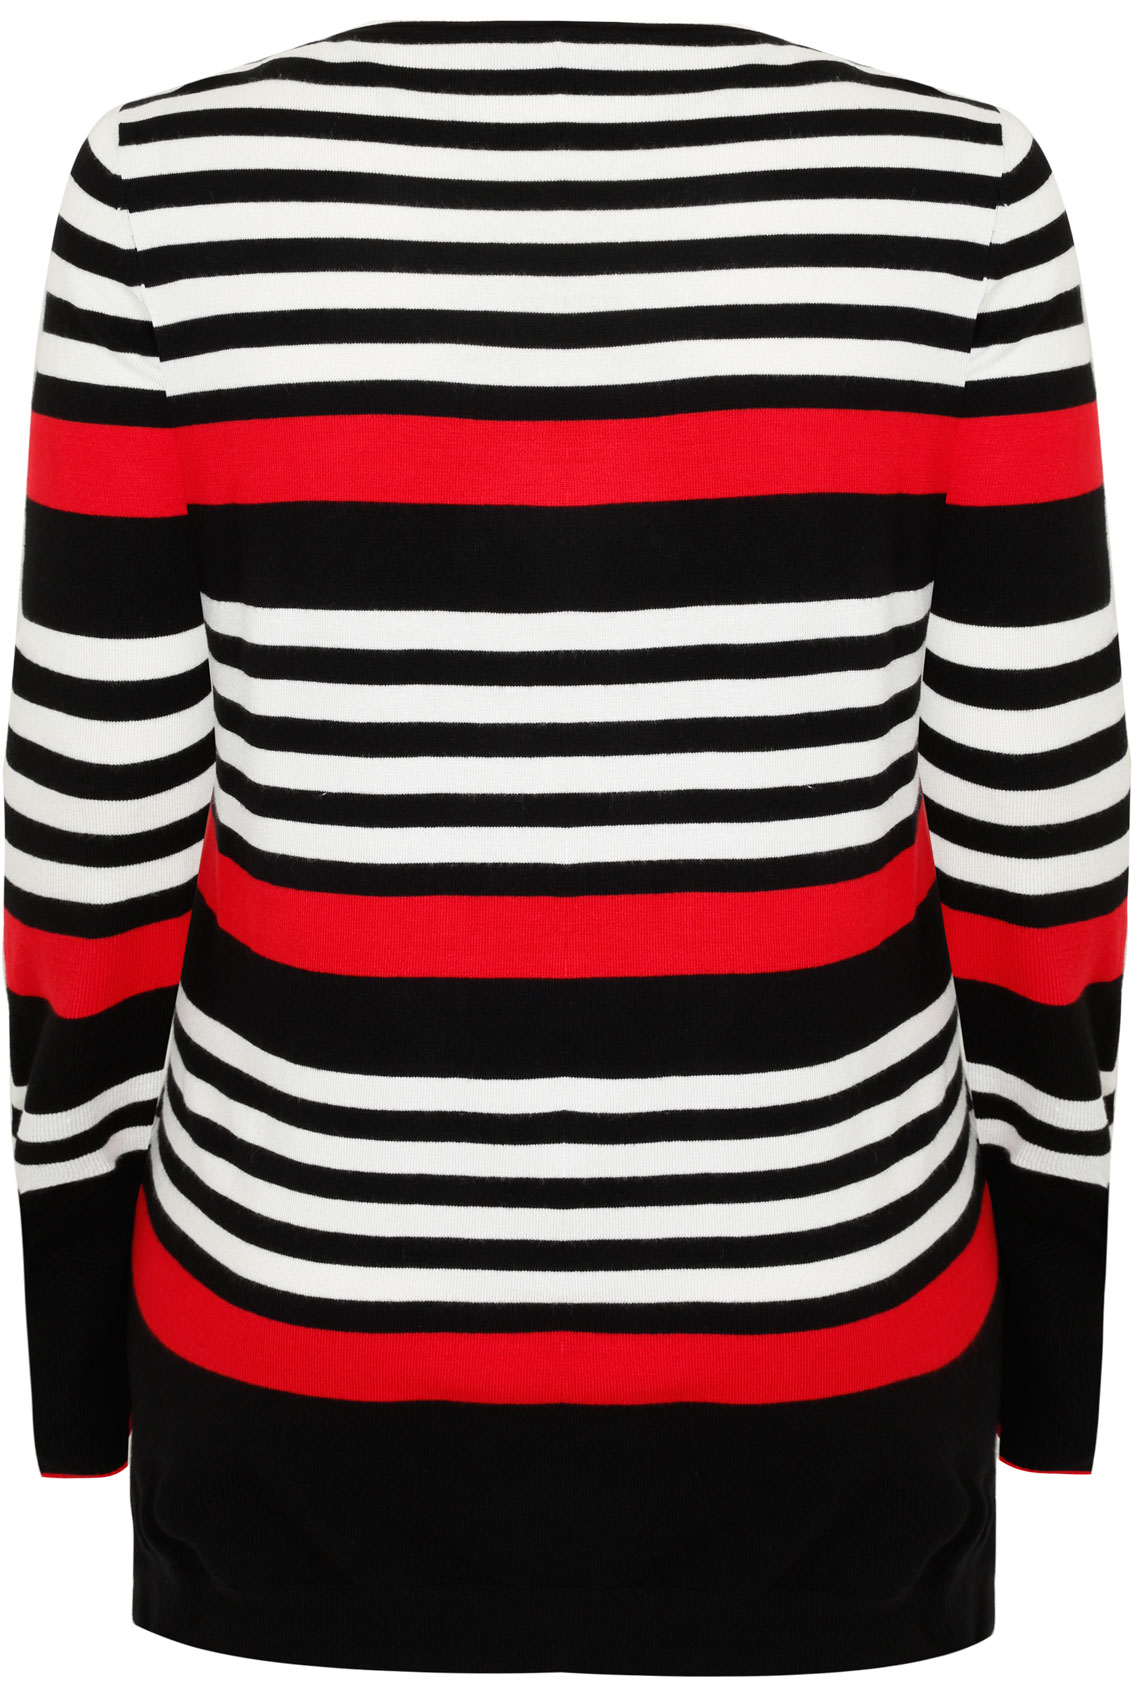 Sweater Weather Sweater Knit Stripe Flannel Red Fabric. Designed by Shelly Comiskey for Henry Glass & Co. this cotton flannel fabric features a vibrant color design and is perfect for quilting apparel and home decor accents.